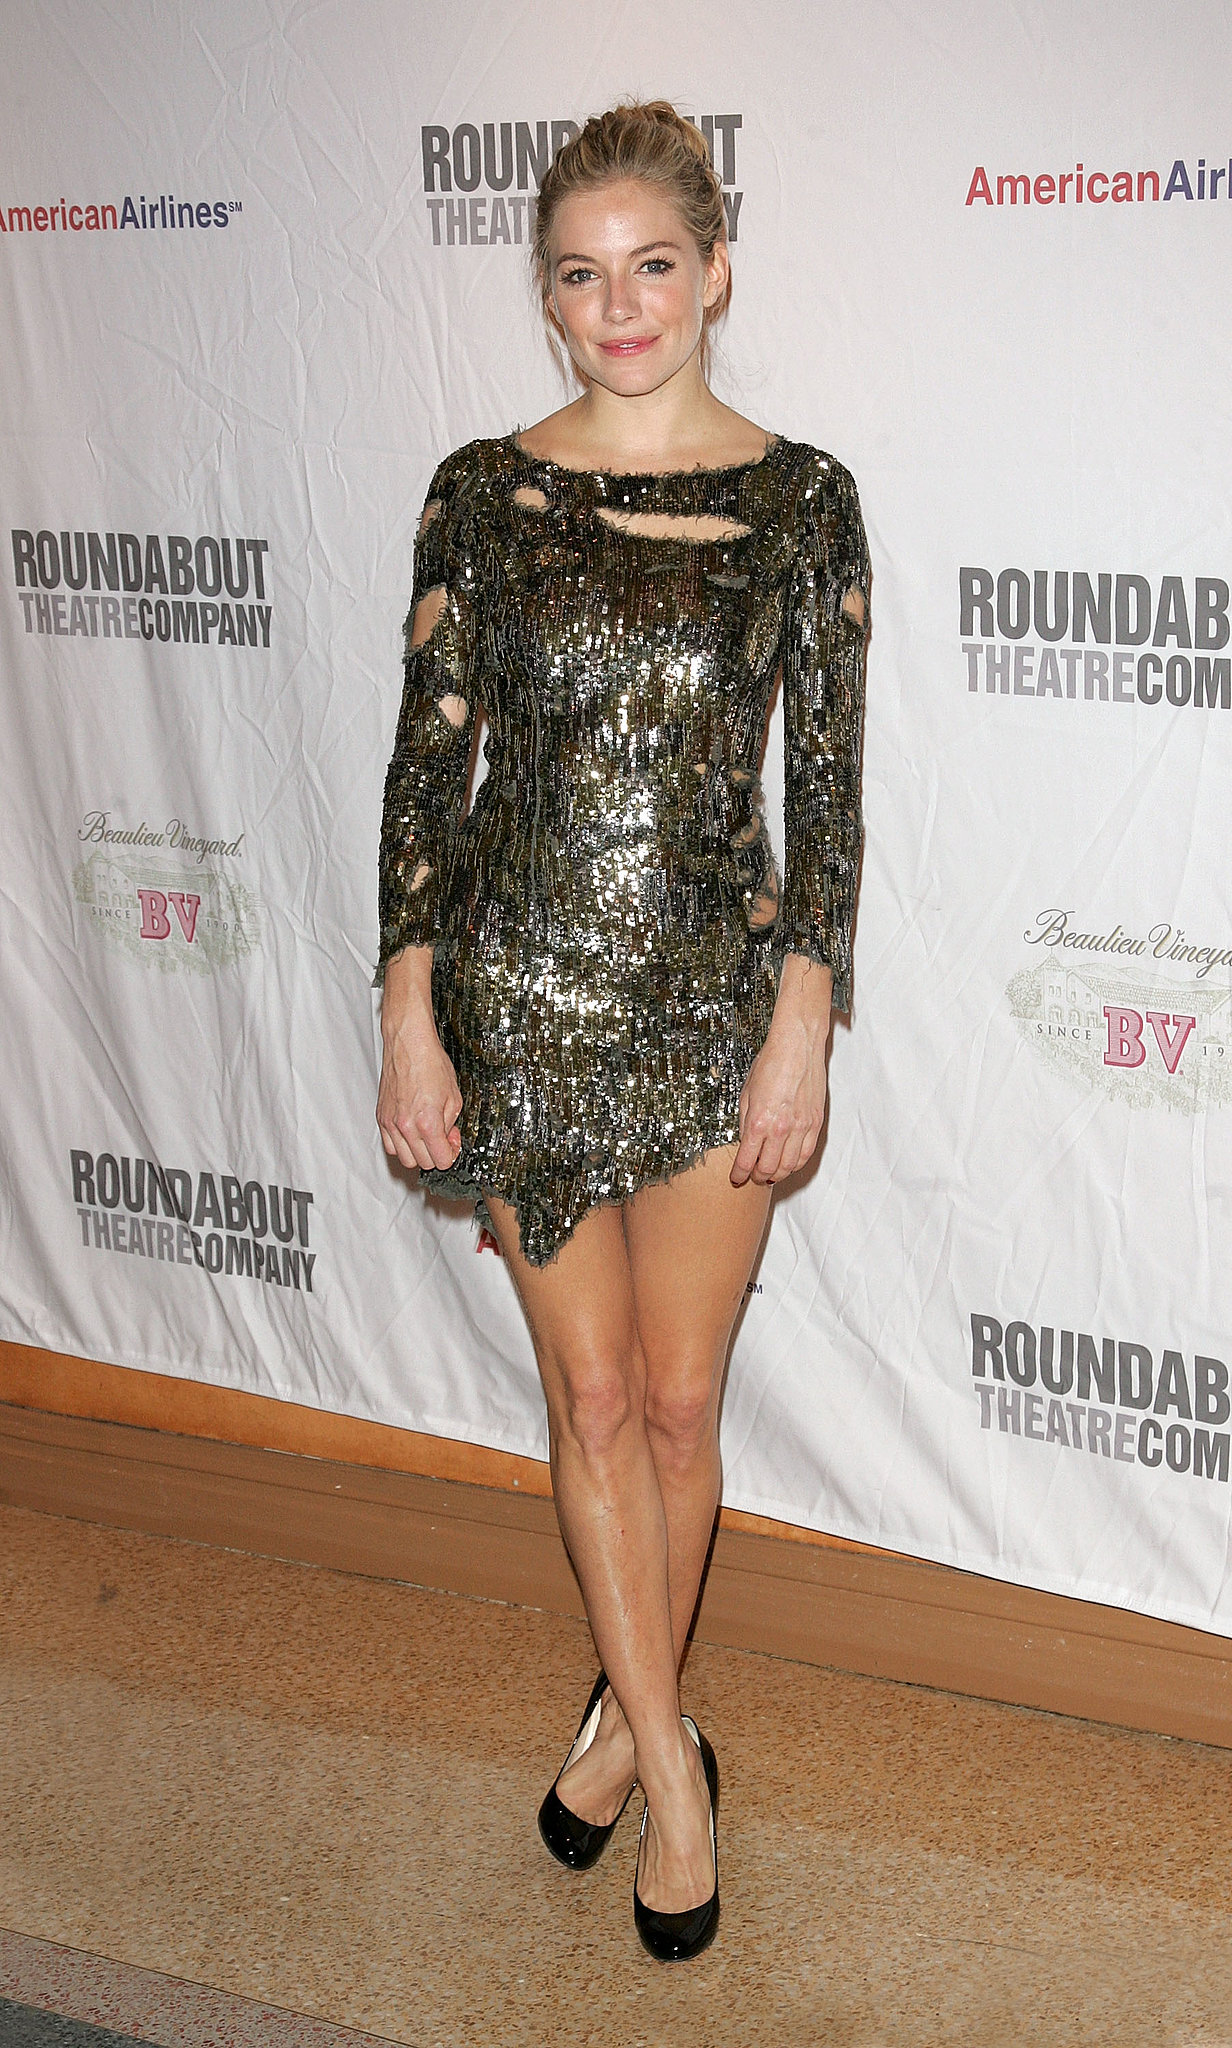 Sienna wore a shredded, metallic mini to celebrate the opening of After Miss Julie on Broadway in 2009.